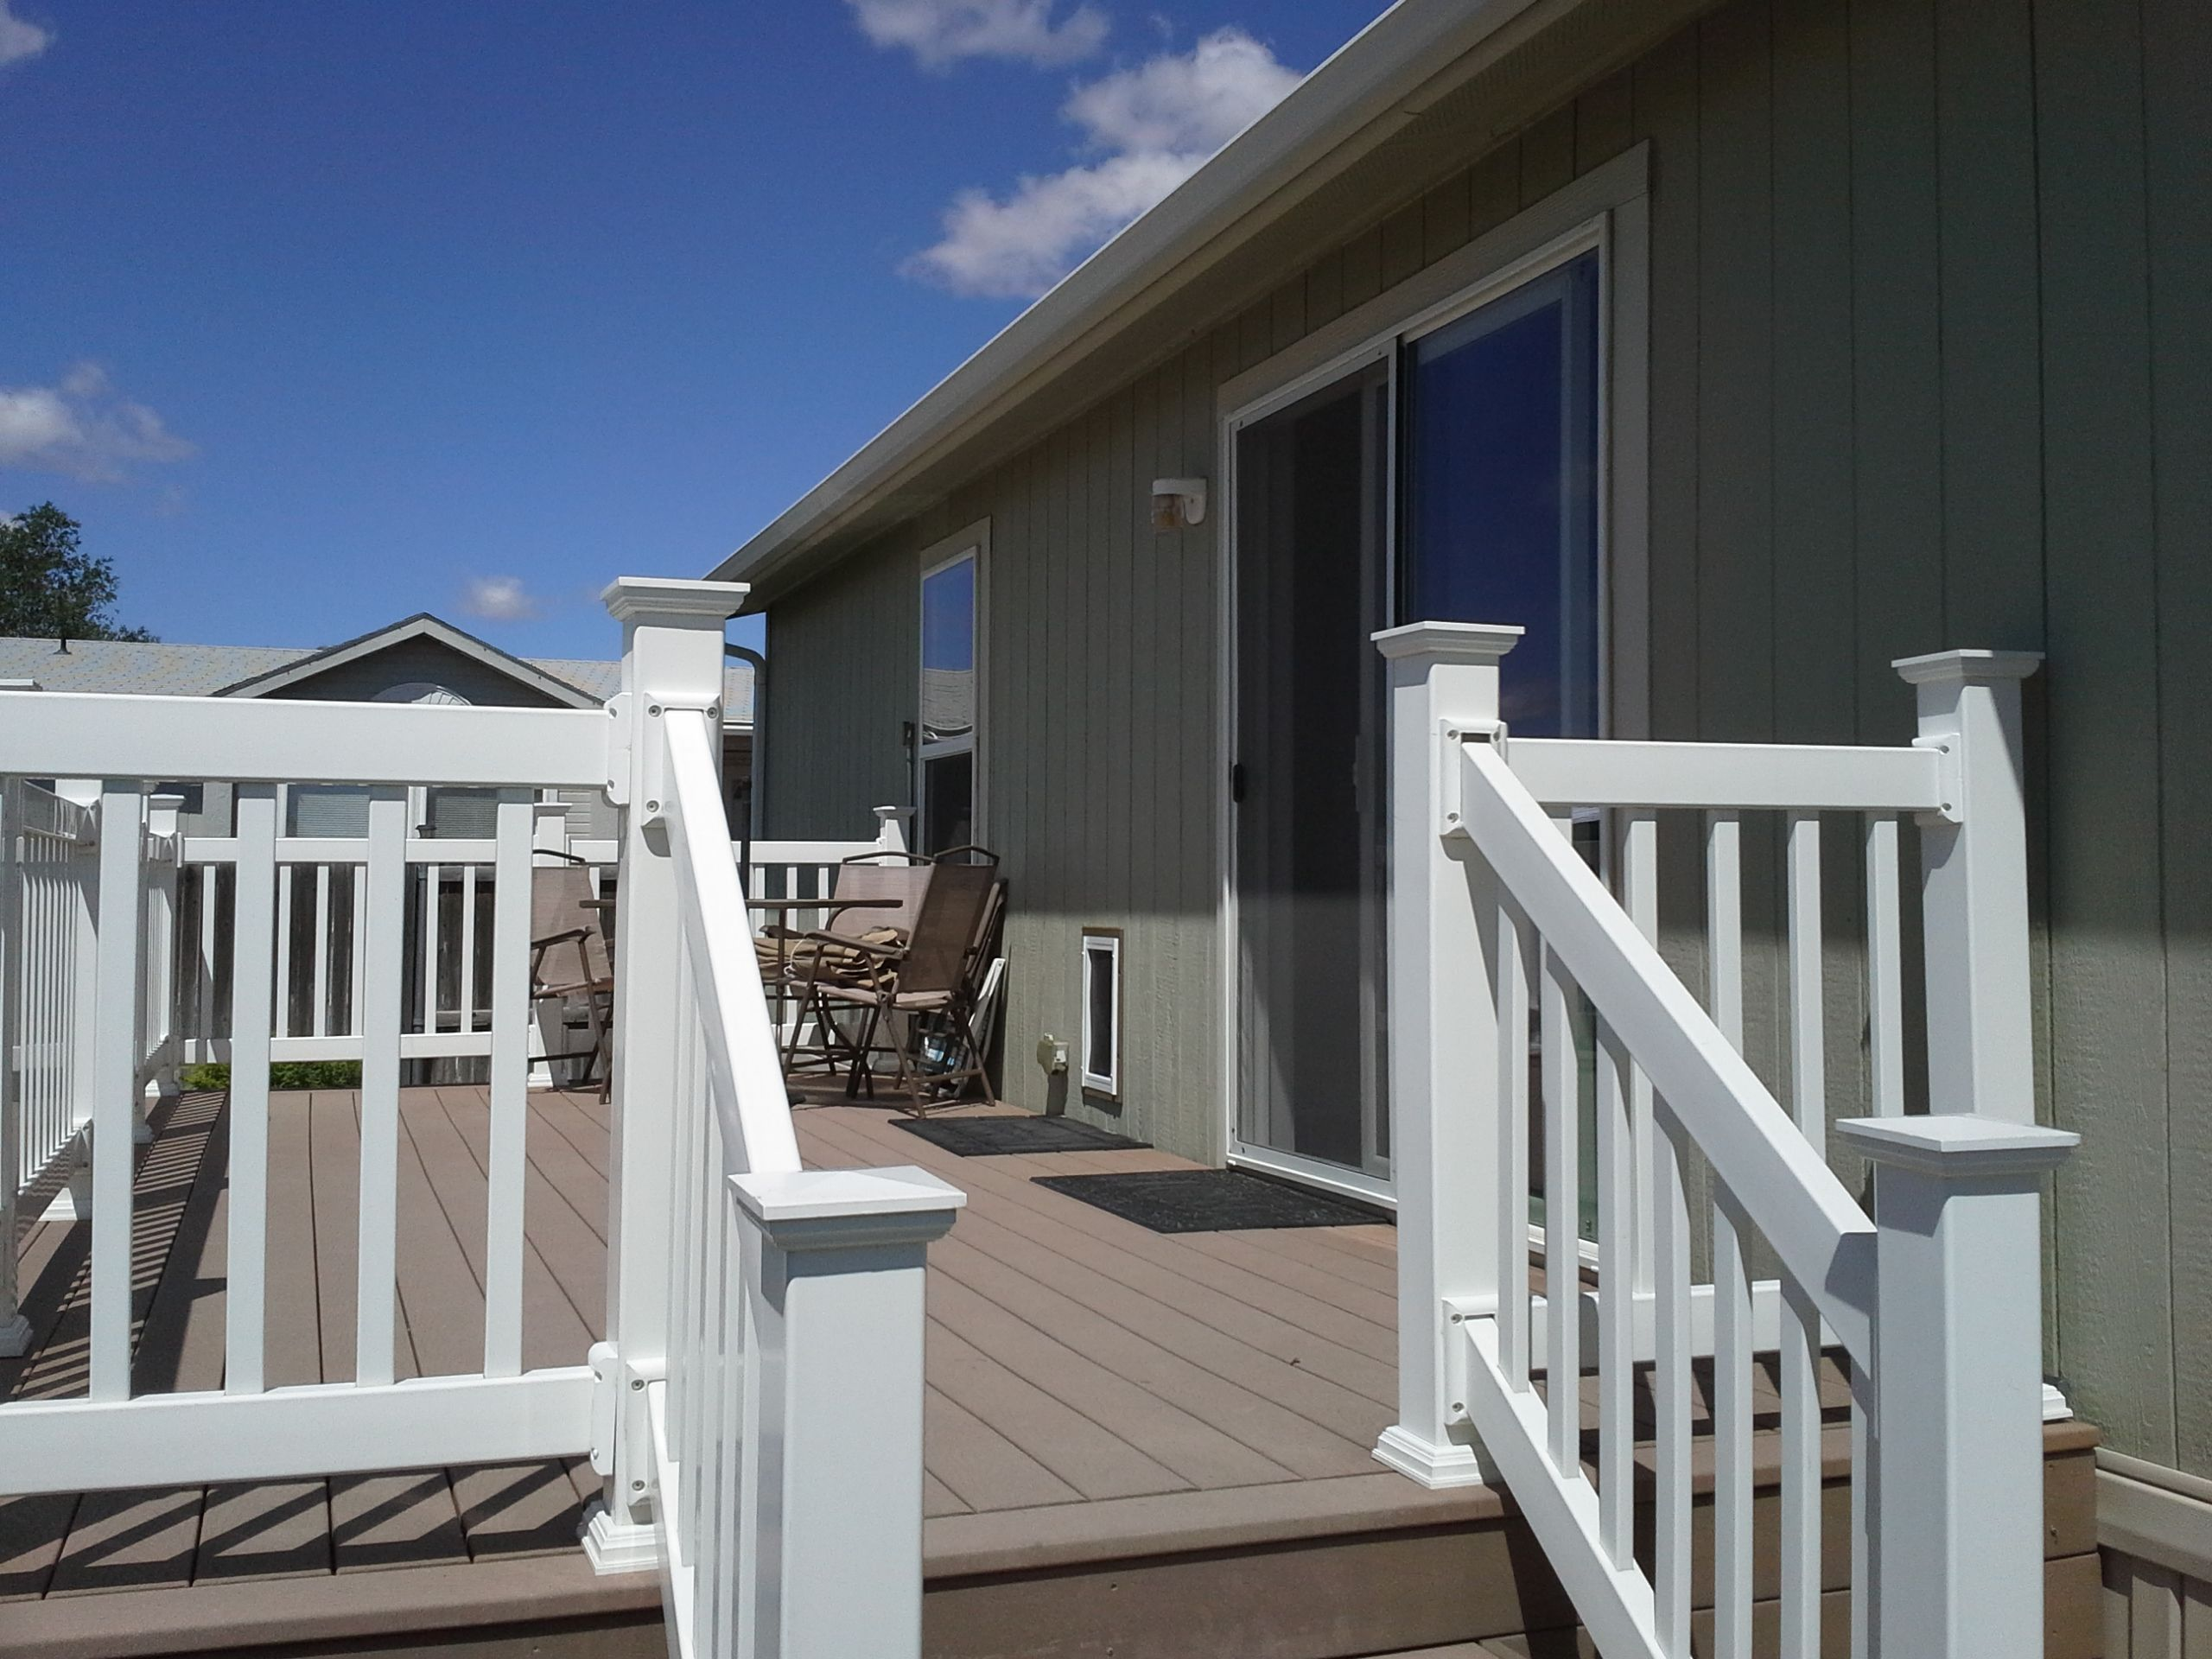 back patio deck. (10' x 20') made from trex decking and